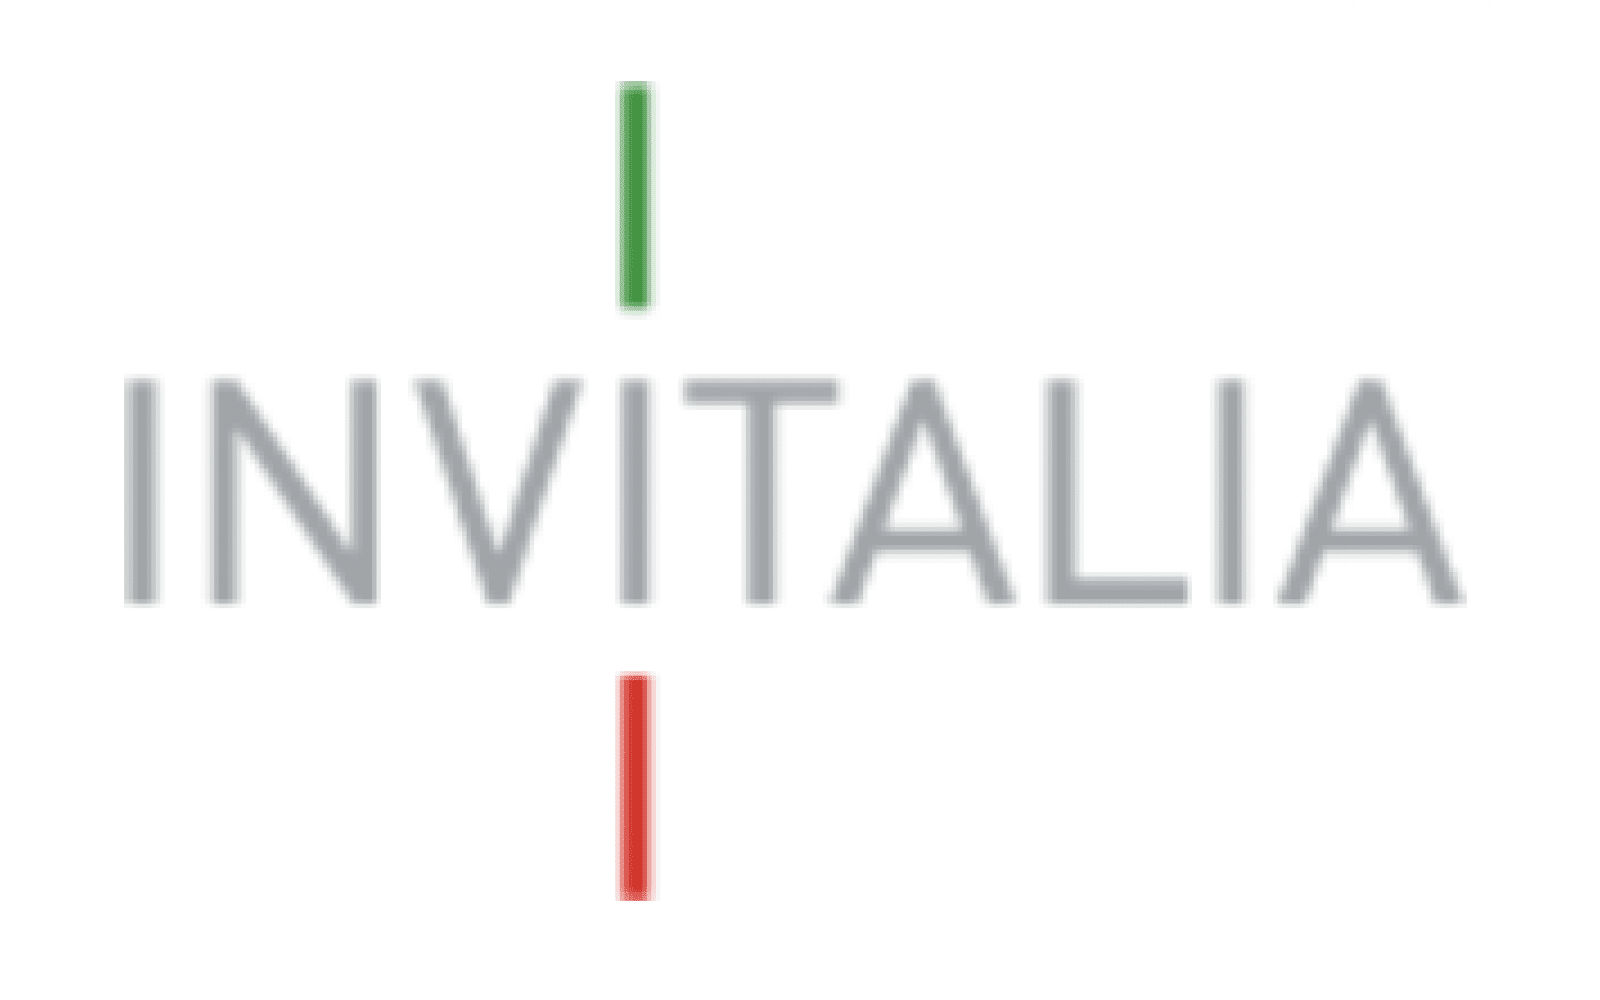 Grey words Invitalia; above the second 'i' in Invitalia, a green I, and below the second 'i' a red I, so that all the I's from top to bottom look like the Italian flag